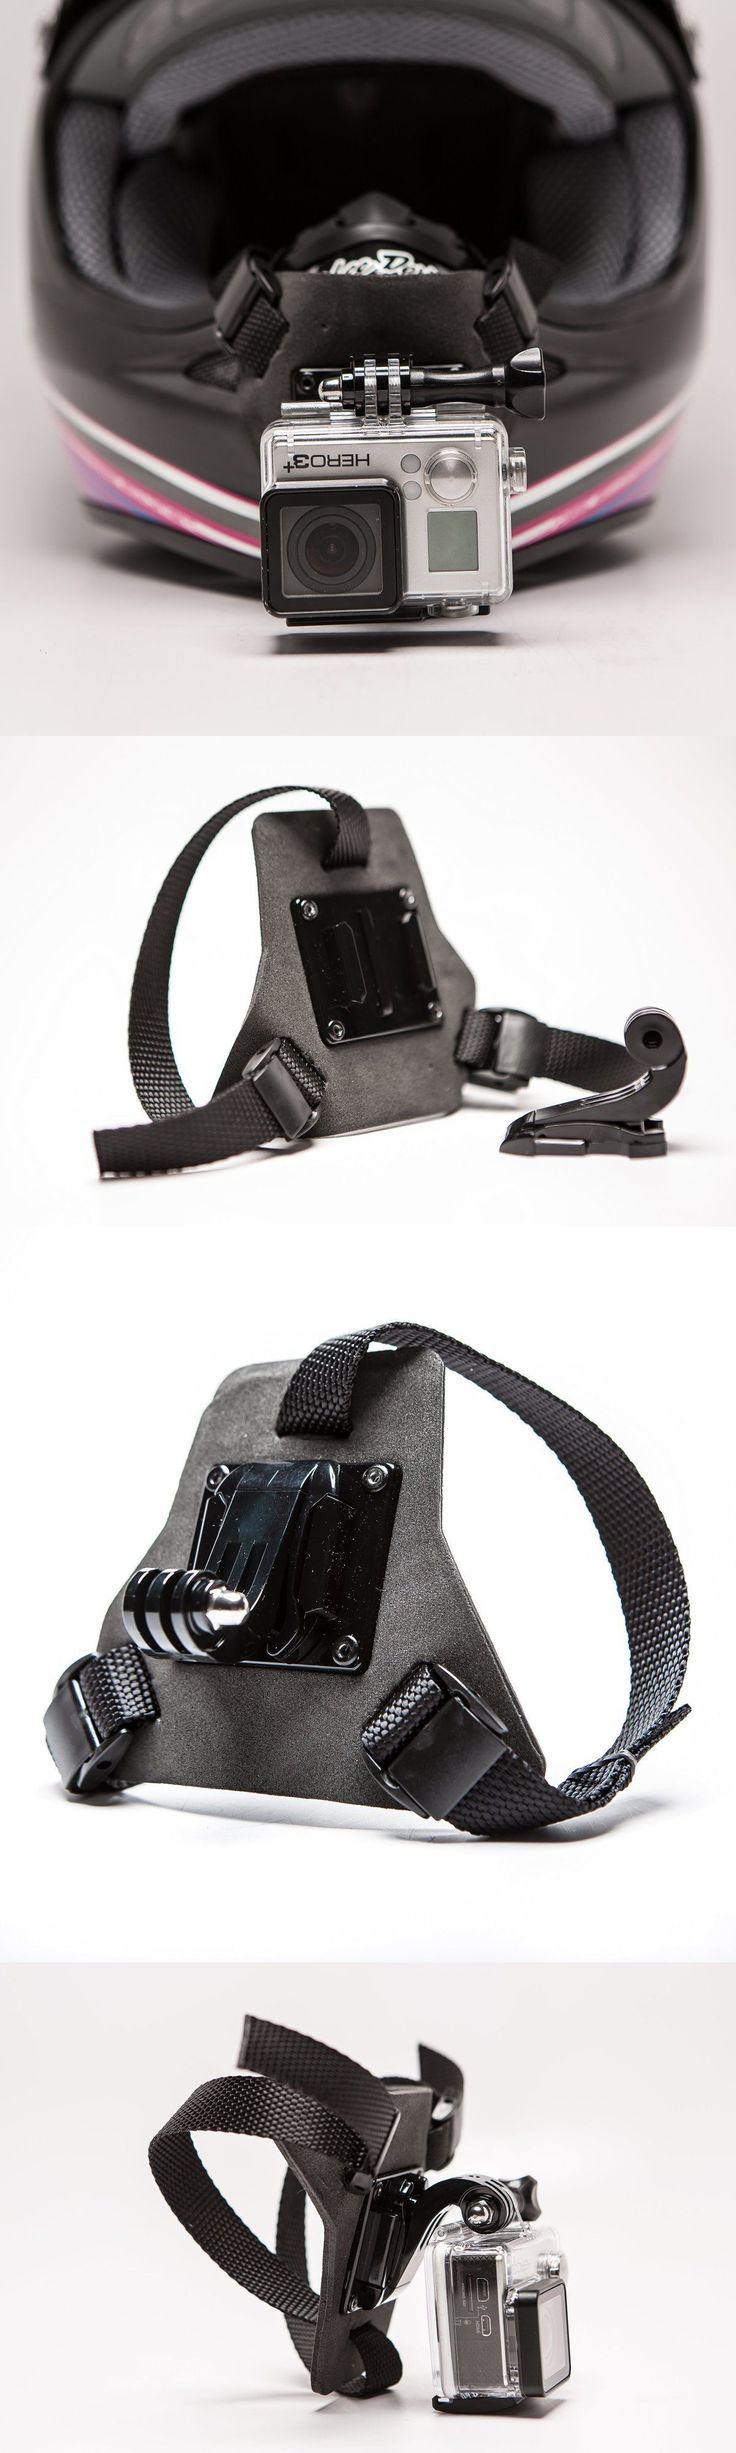 Snorkels and Sets 71162: Full Face Helmet Chin Mount Device For Gopro Perfect Pov Filming Angle Sport -> BUY IT NOW ONLY: $51.95 on eBay!